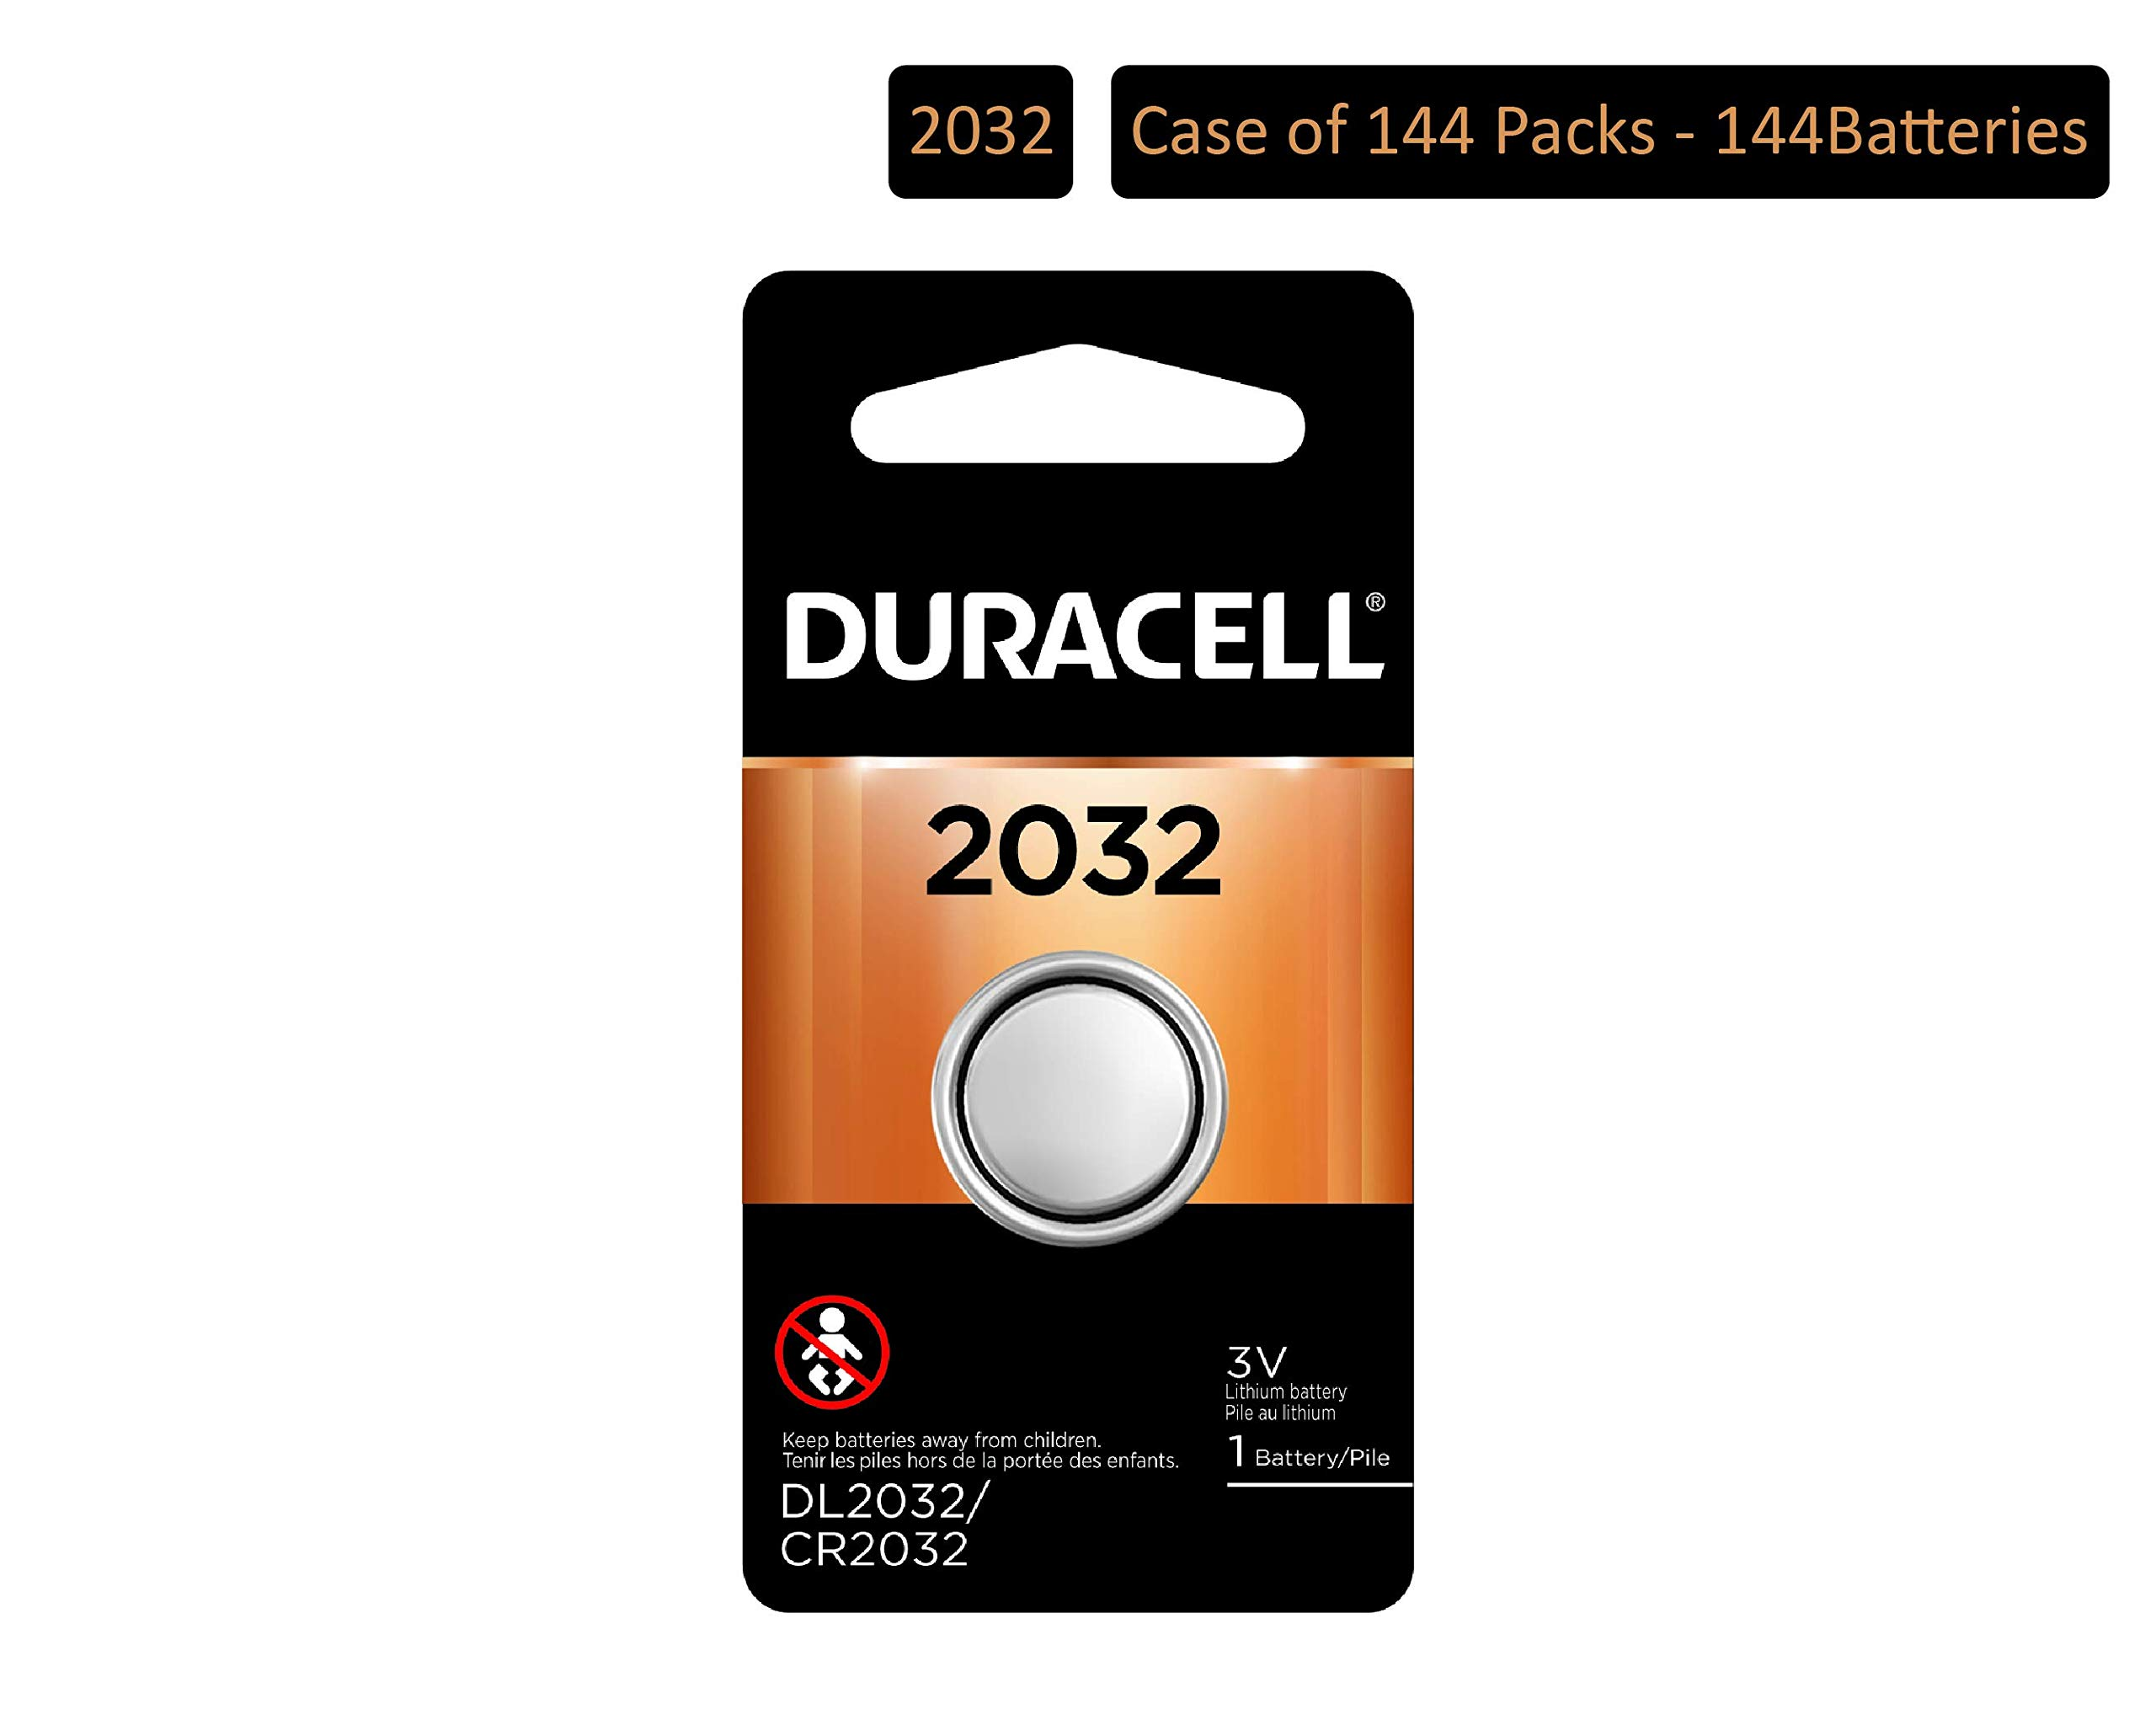 Duracell - 2032 3V Lithium Coin Battery - Long Lasting Battery (Pack of 144)